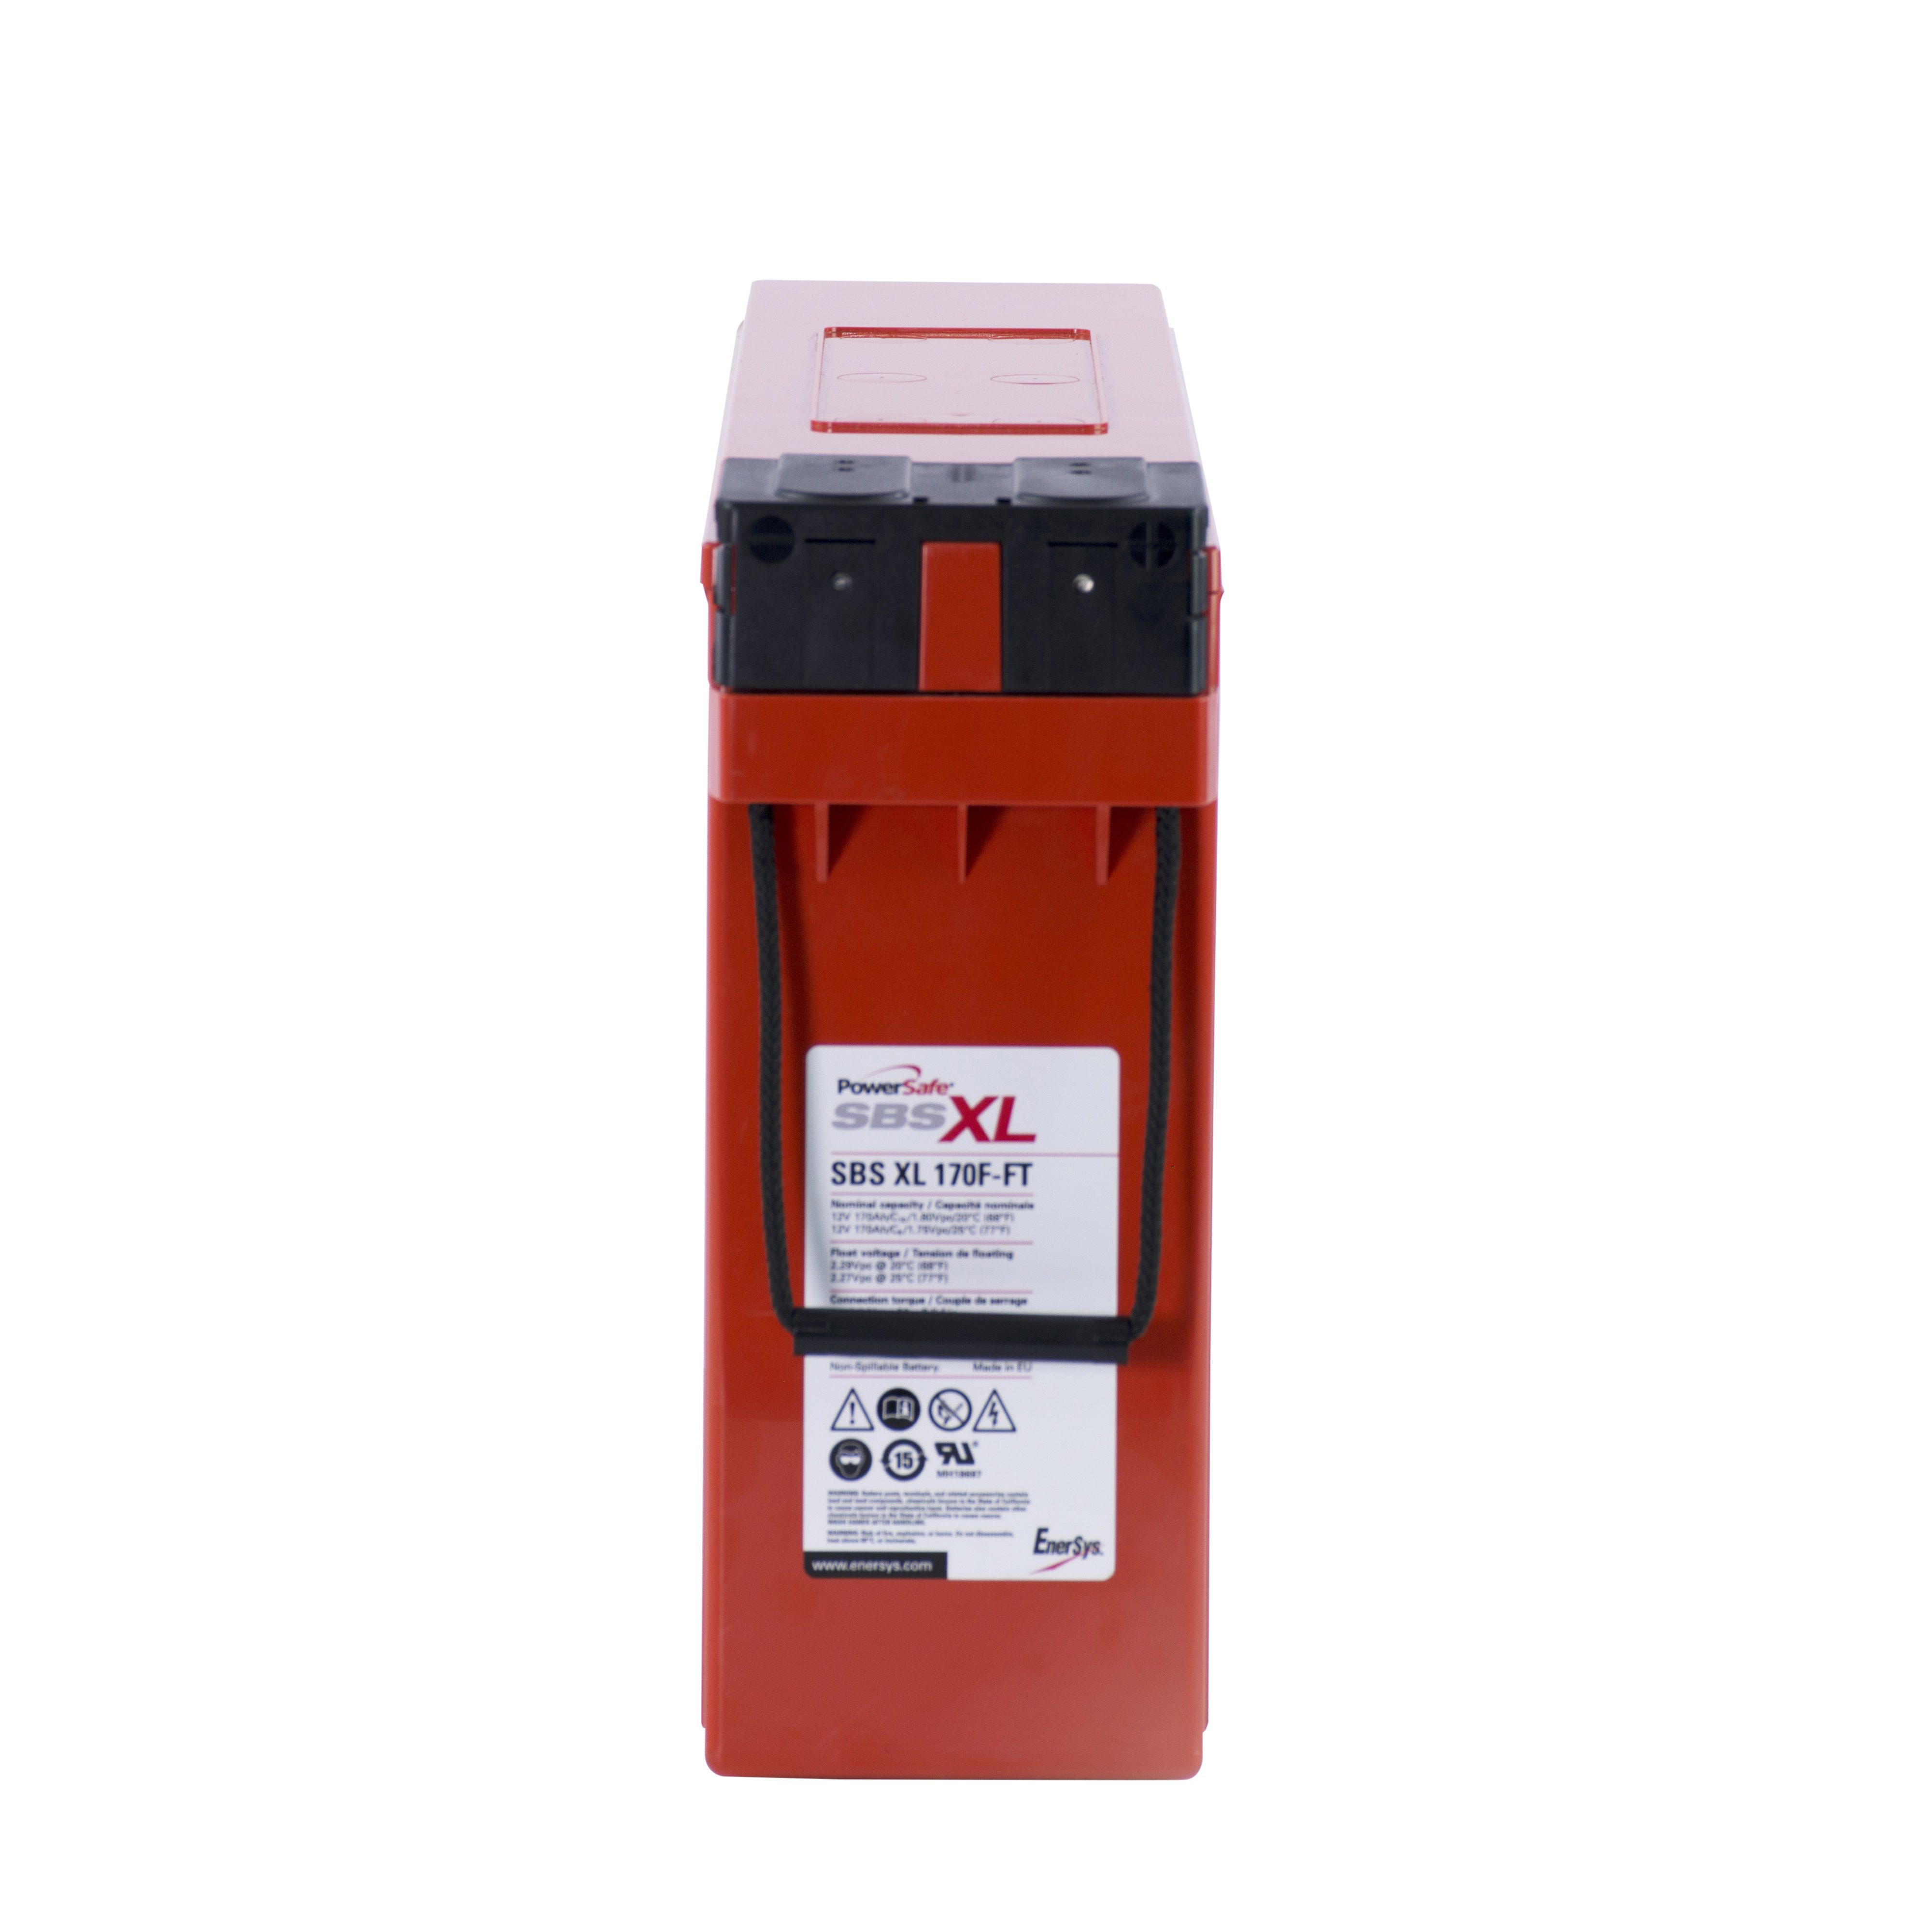 EnerSys PowerSafe SBS XL 12V 170F-FT